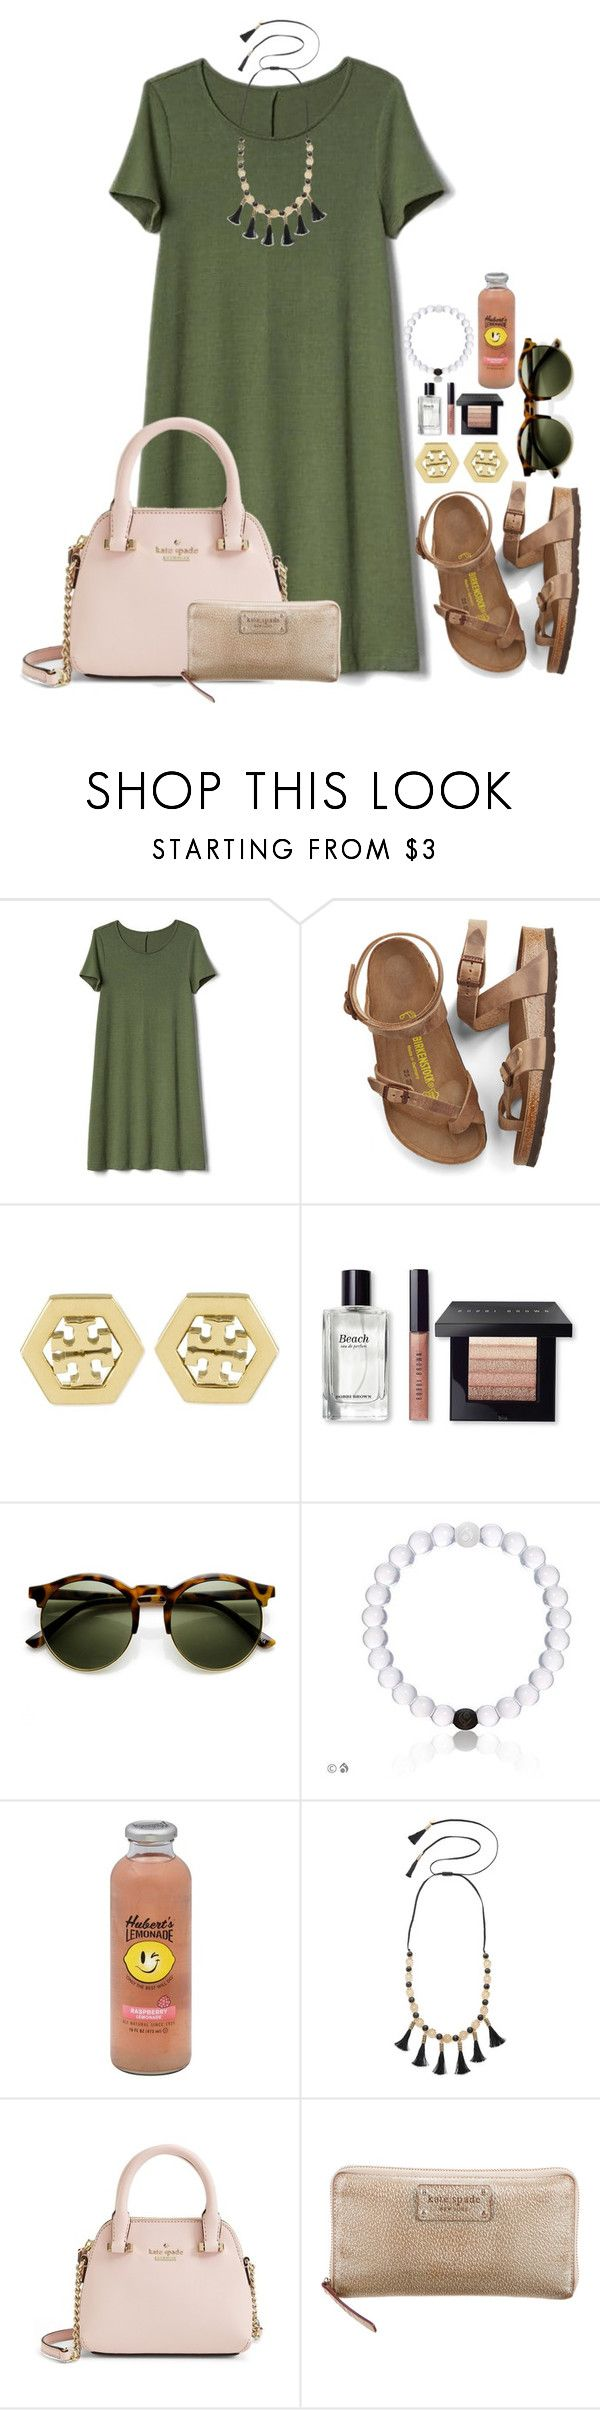 """Who's wearing green tomorrow!"" by flroasburn ❤ liked on Polyvore featuring Gap, Birkenstock, Tory Burch, Bobbi Brown Cosmetics, Hansen and Kate Spade"